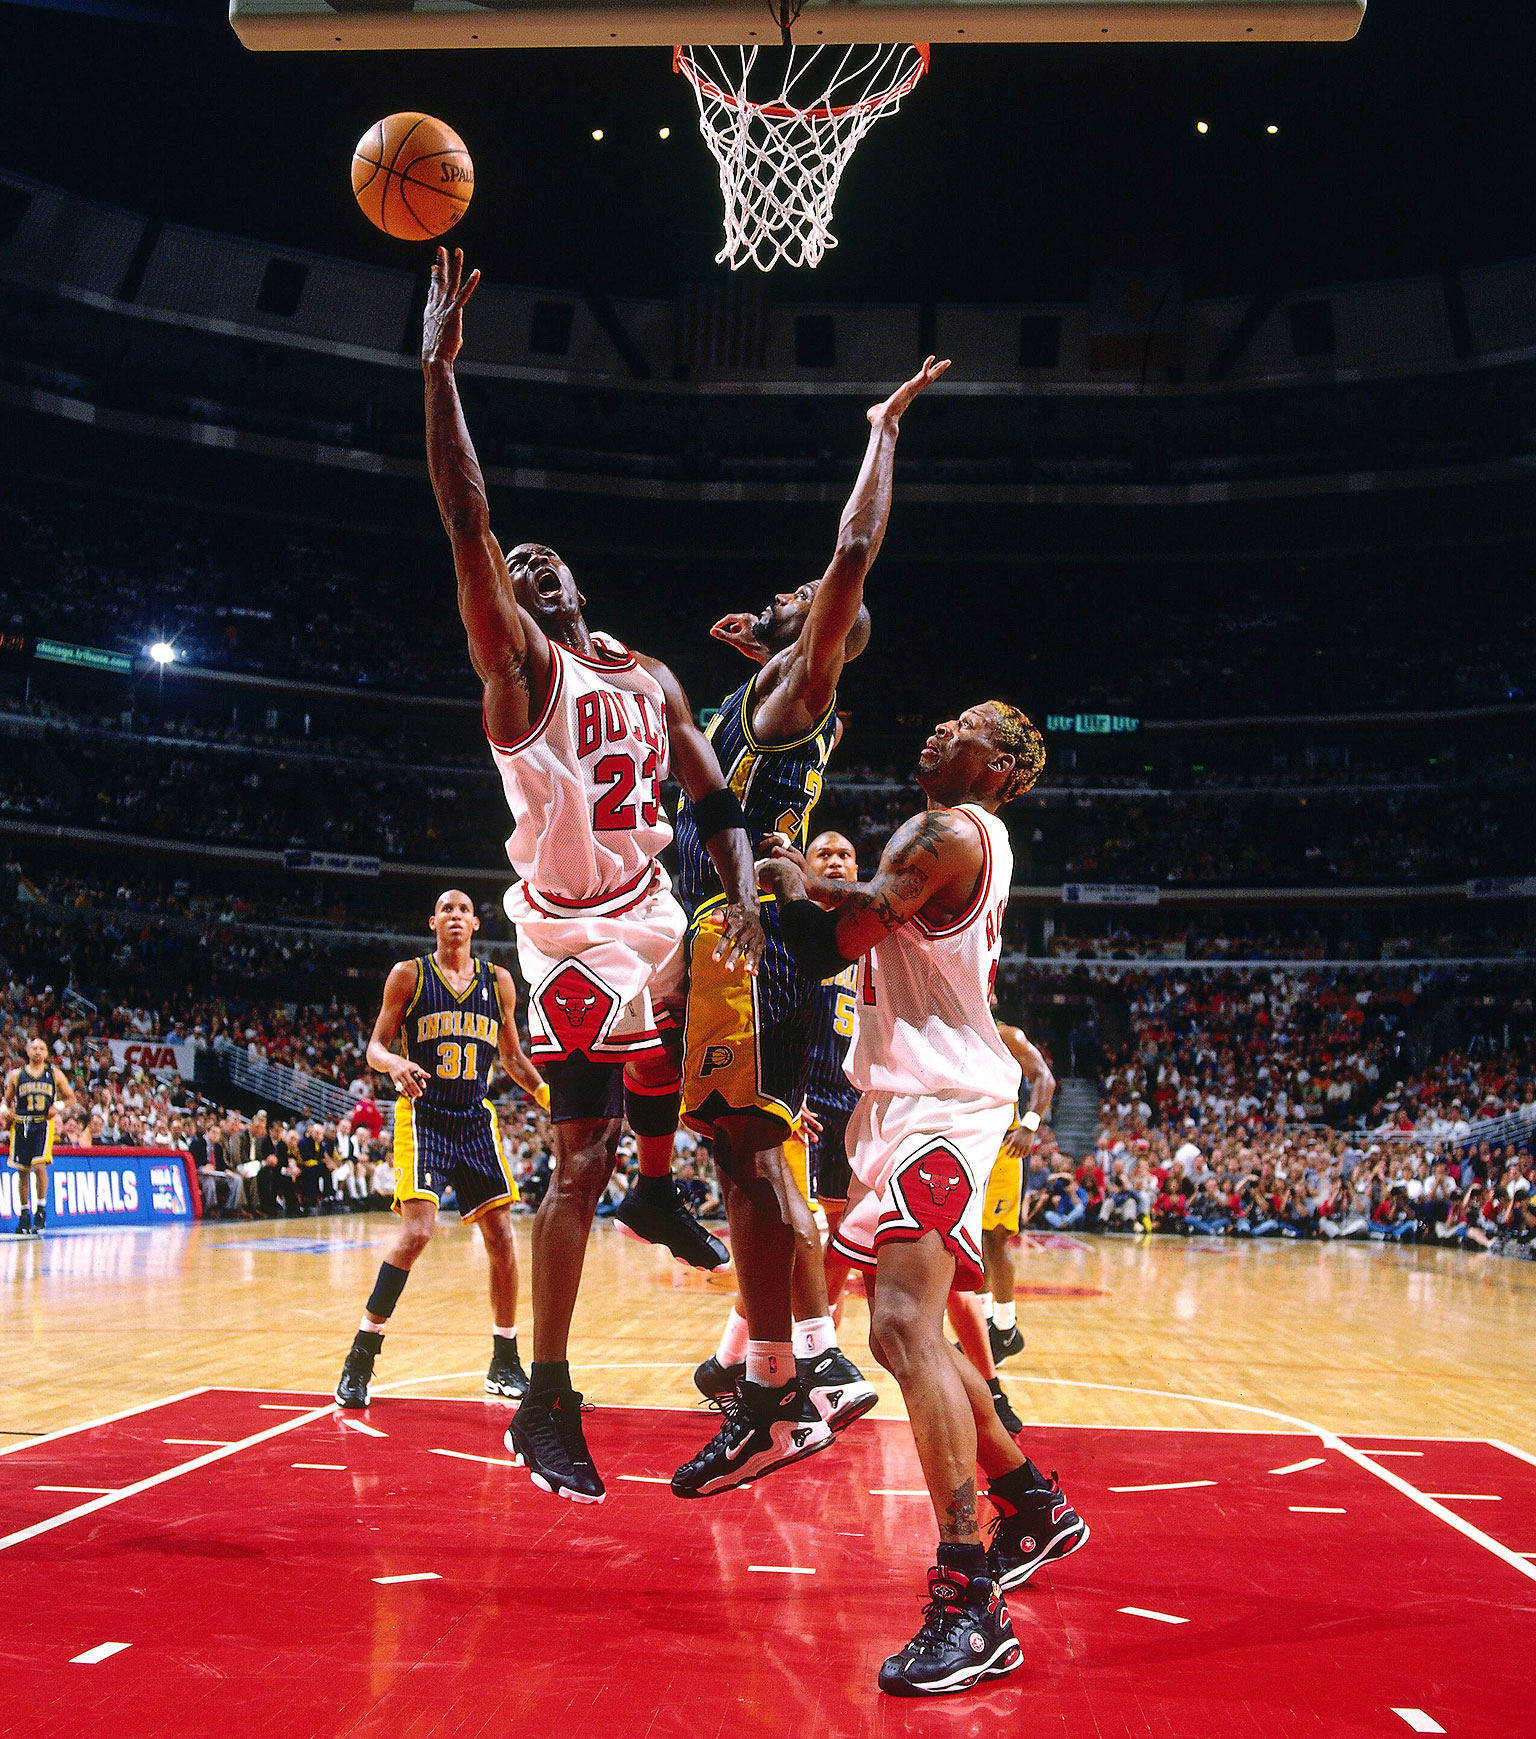 29. Beats Pacers in 7 - Michael Jordan 50 Greatest Moments - ESPN